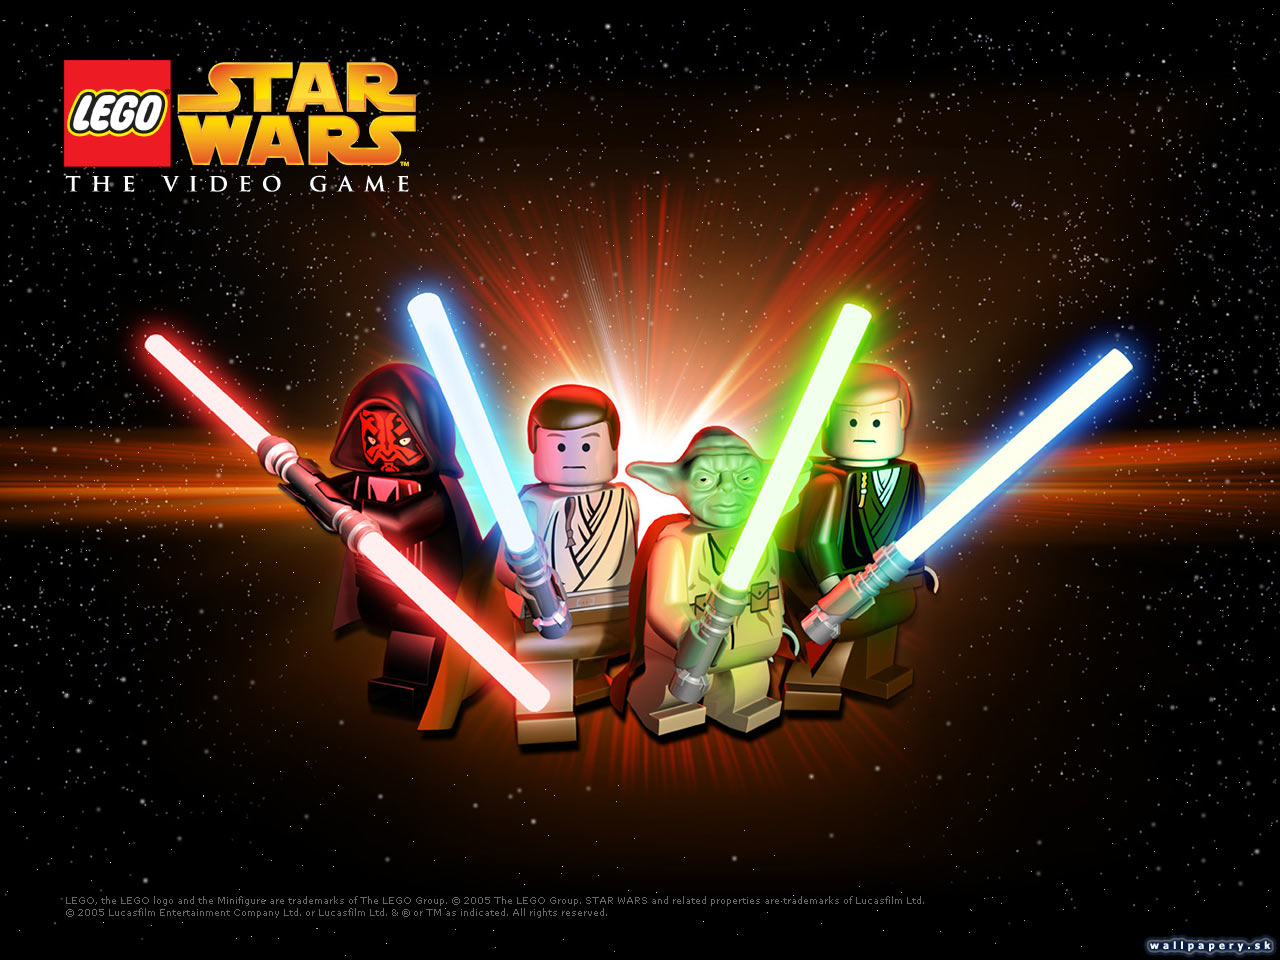 LEGO Star Wars: The Video Game - wallpaper 1